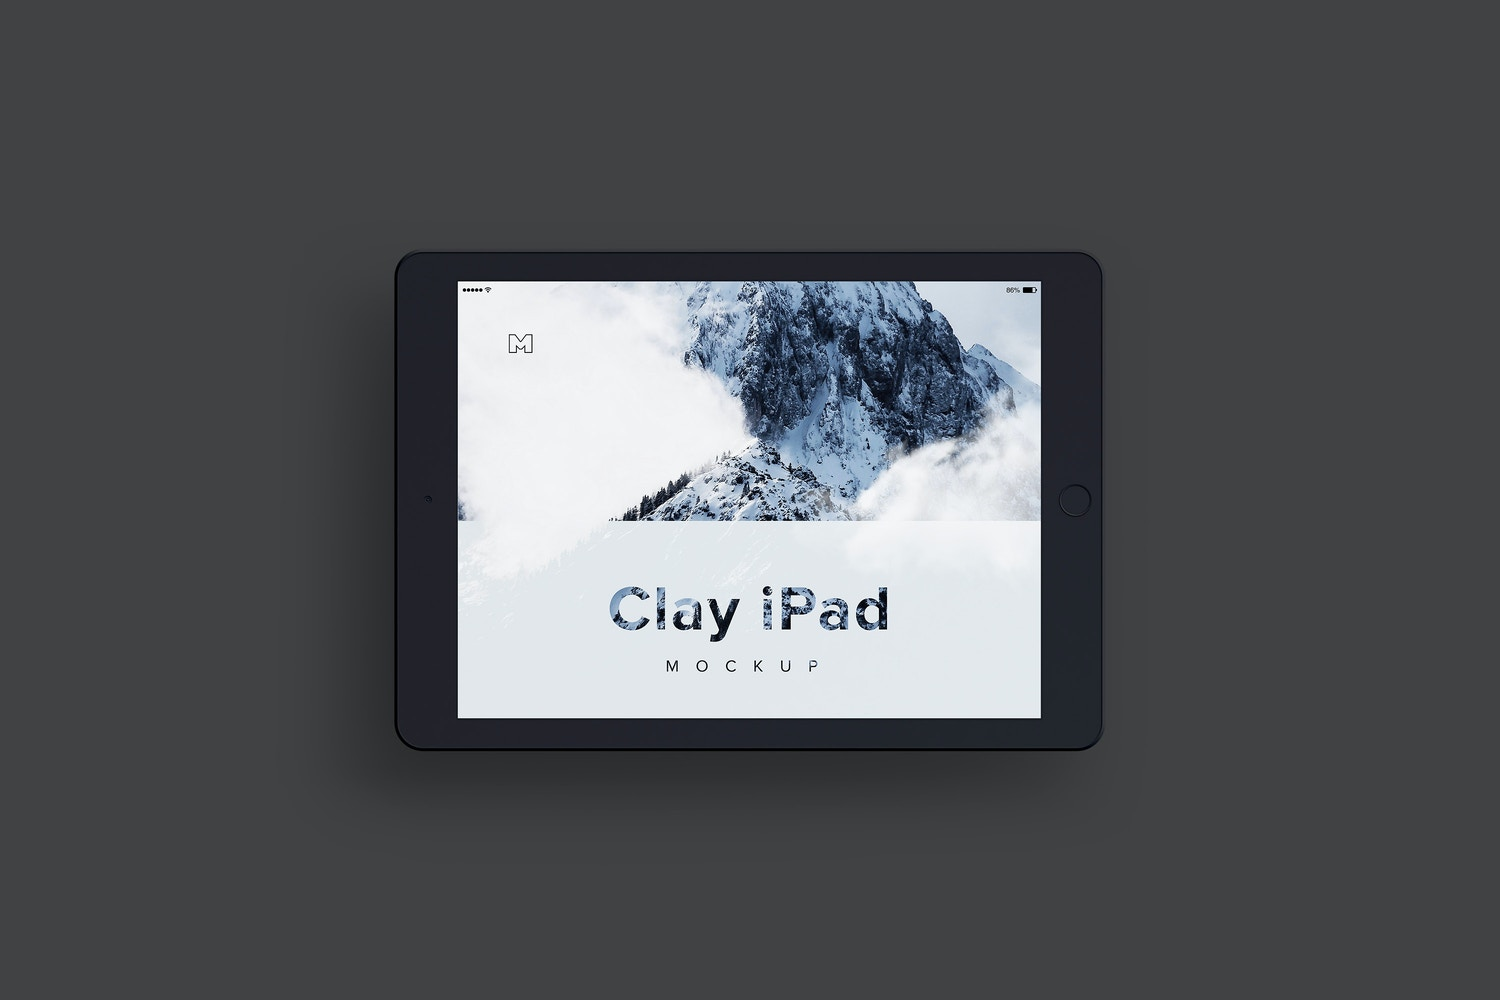 You can select any color to change the color of the iPad.